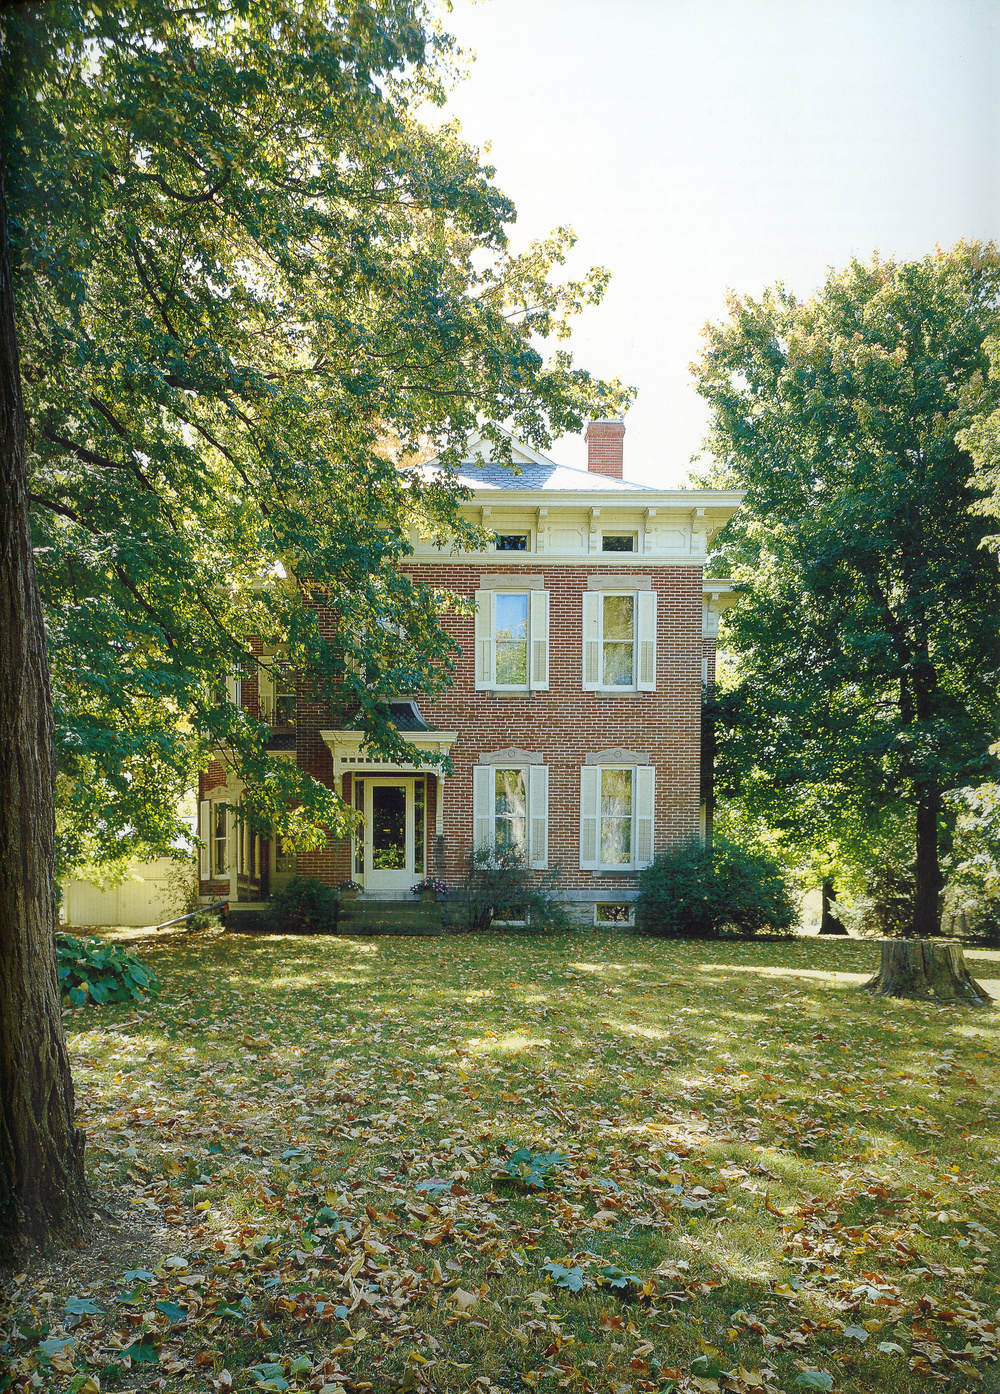 Samuel Smith House